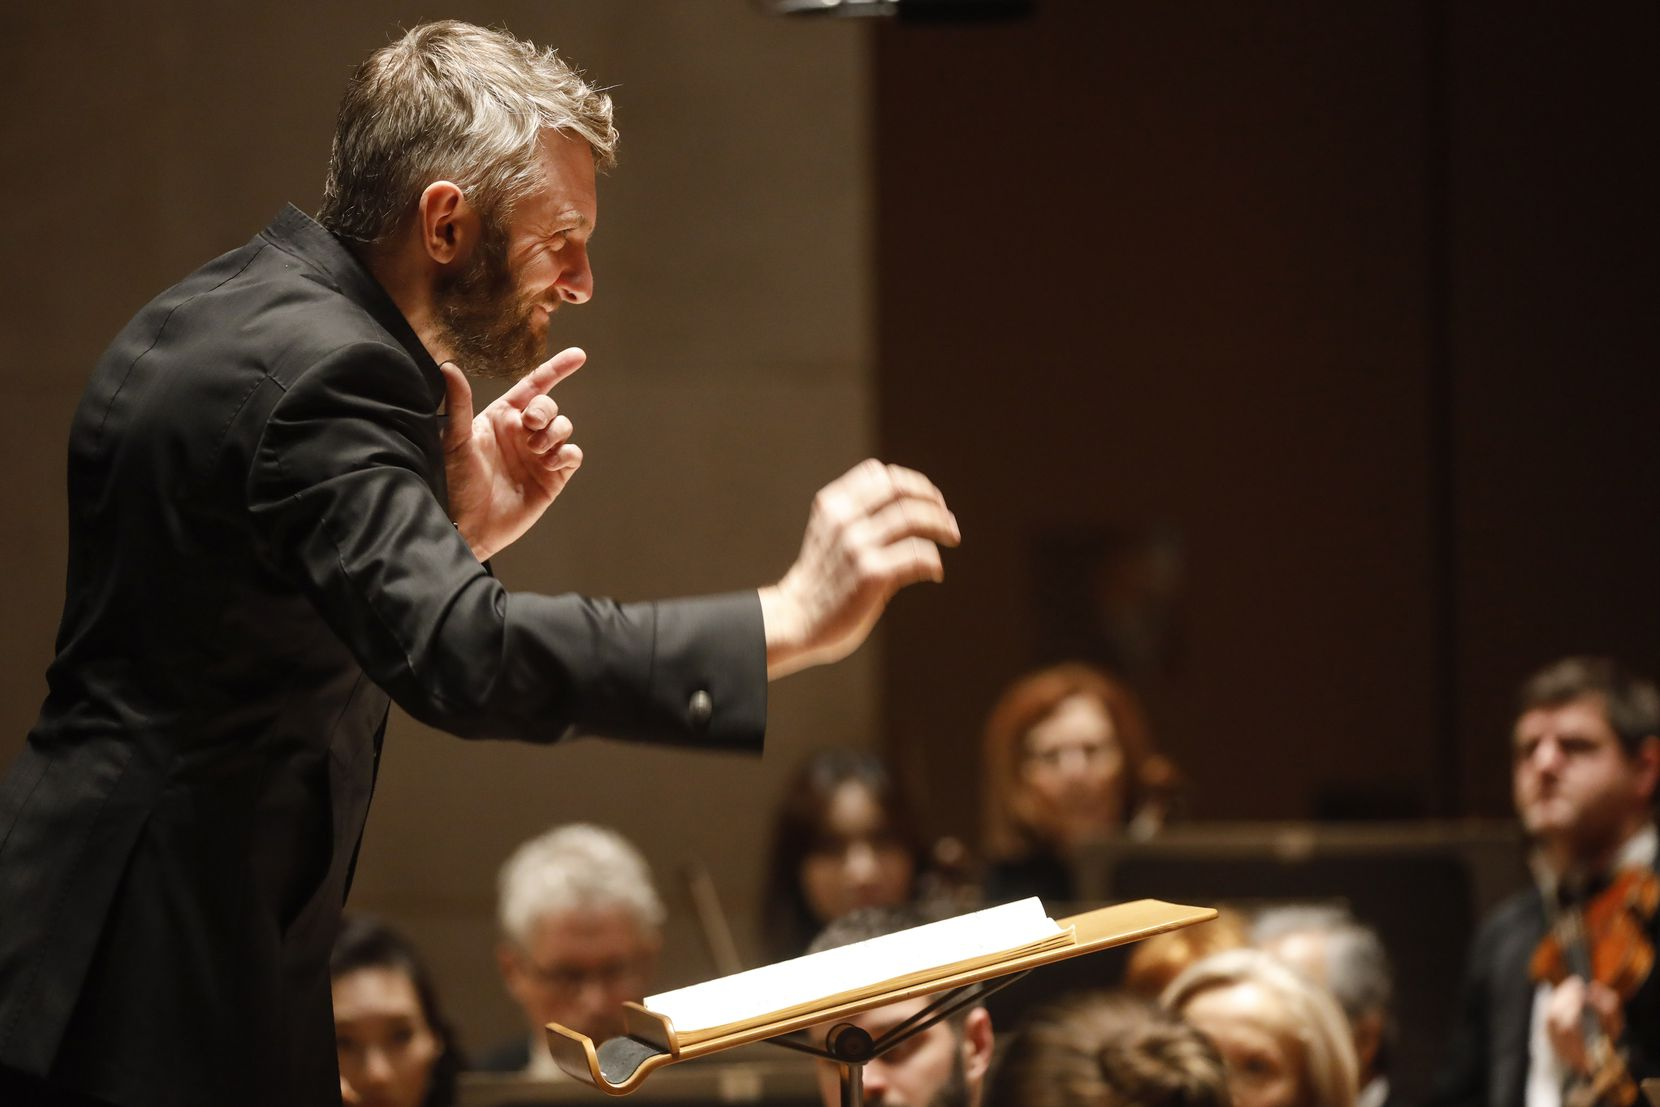 Guest conductor Kirill Karabits conducts the Dallas Symphony Orchestra during a concert on Thursday, Feb. 27, 2020 at the Morton H. Meyerson Symphony Center in Dallas. (Ryan Michalesko/The Dallas Morning News)